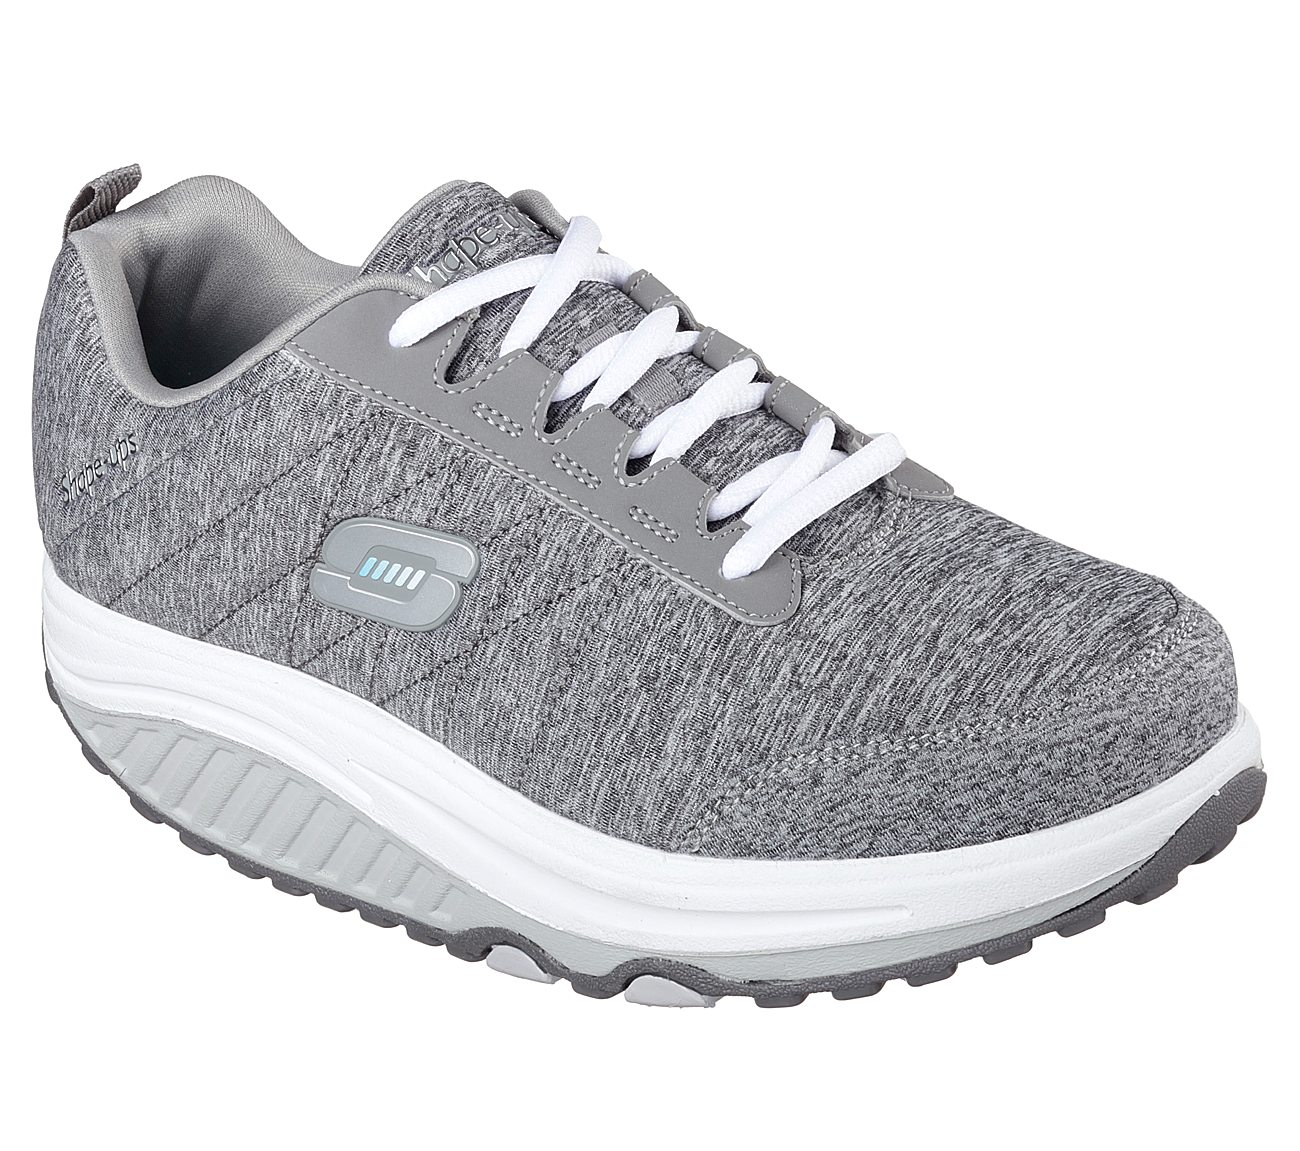 skechers shape up shoes for women